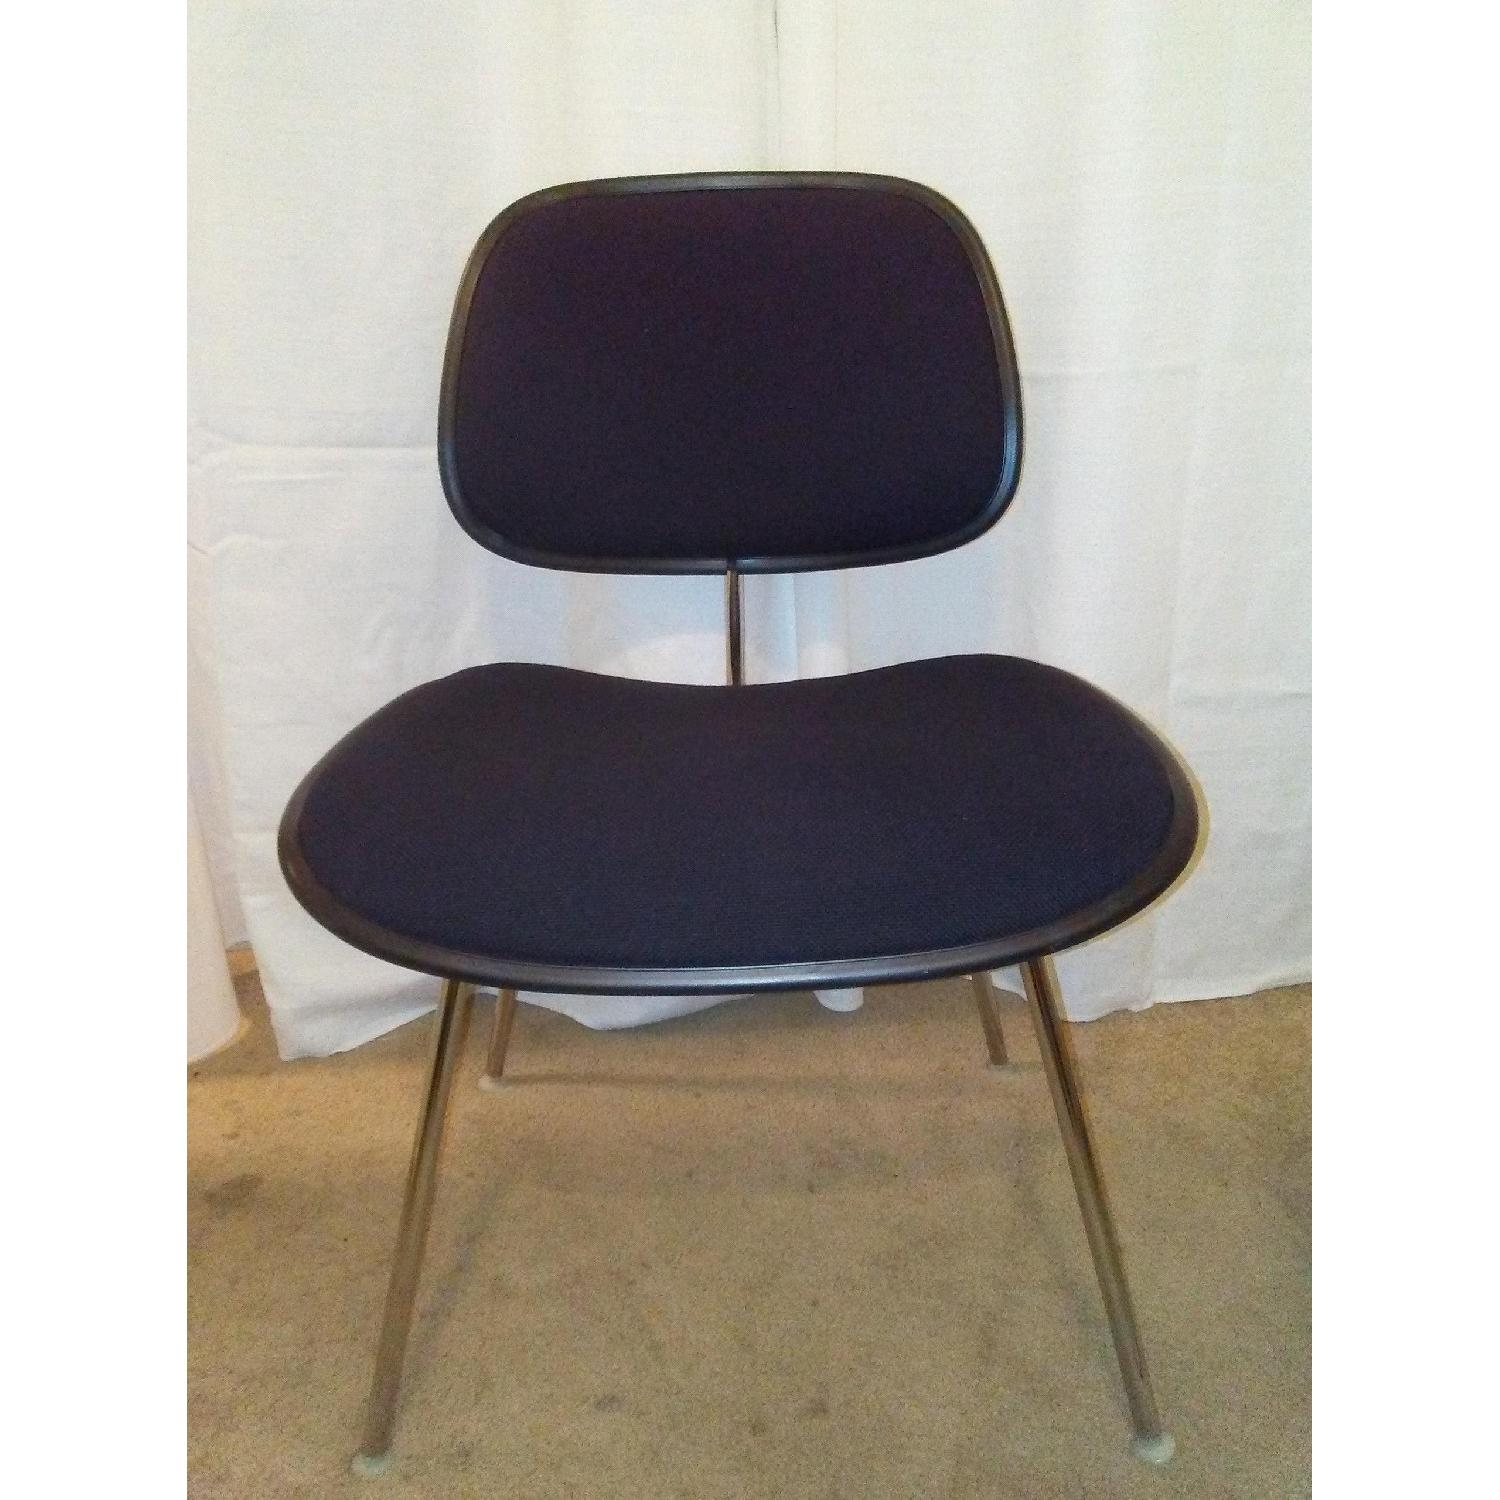 Herman Miller c.1992 Charles Eames Dining/Accent Chairs - image-8